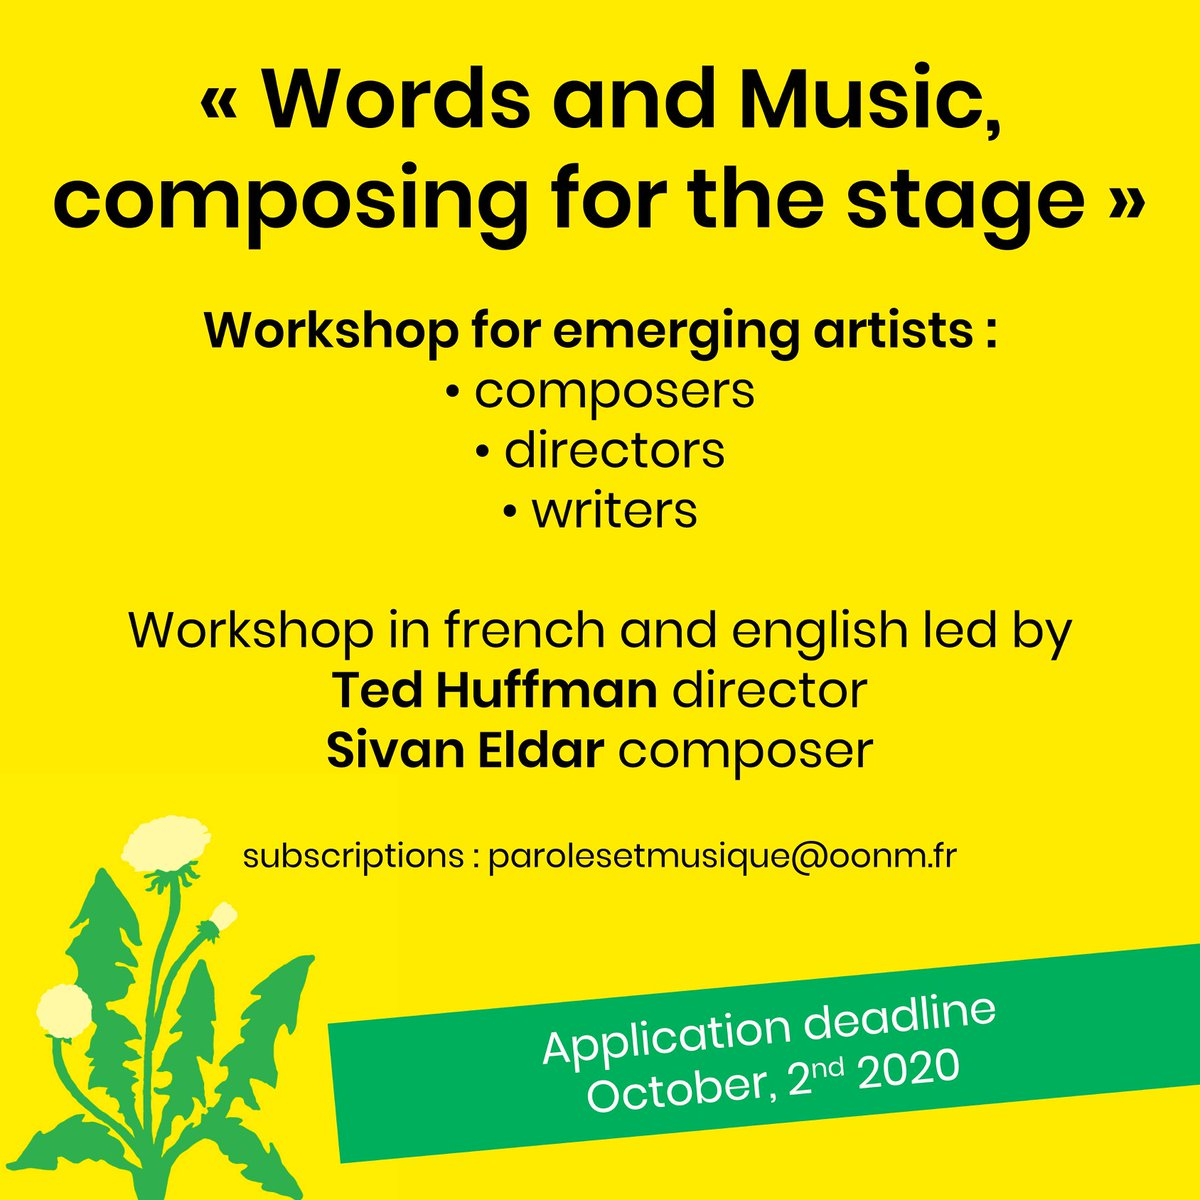 """📣 CALL FOR APPLICATIONS / EMERGING ARTISTS """"Words and Music : composing for the stage"""" is a new @OONMLR workshop, led by our artists in residence, composer @SivanEldar and writer/director @tdhffmn, designed for emerging artists. ℹ️ Info & subscriptions : https://t.co/8MGExedtvu https://t.co/Yzb2MSWAeL"""